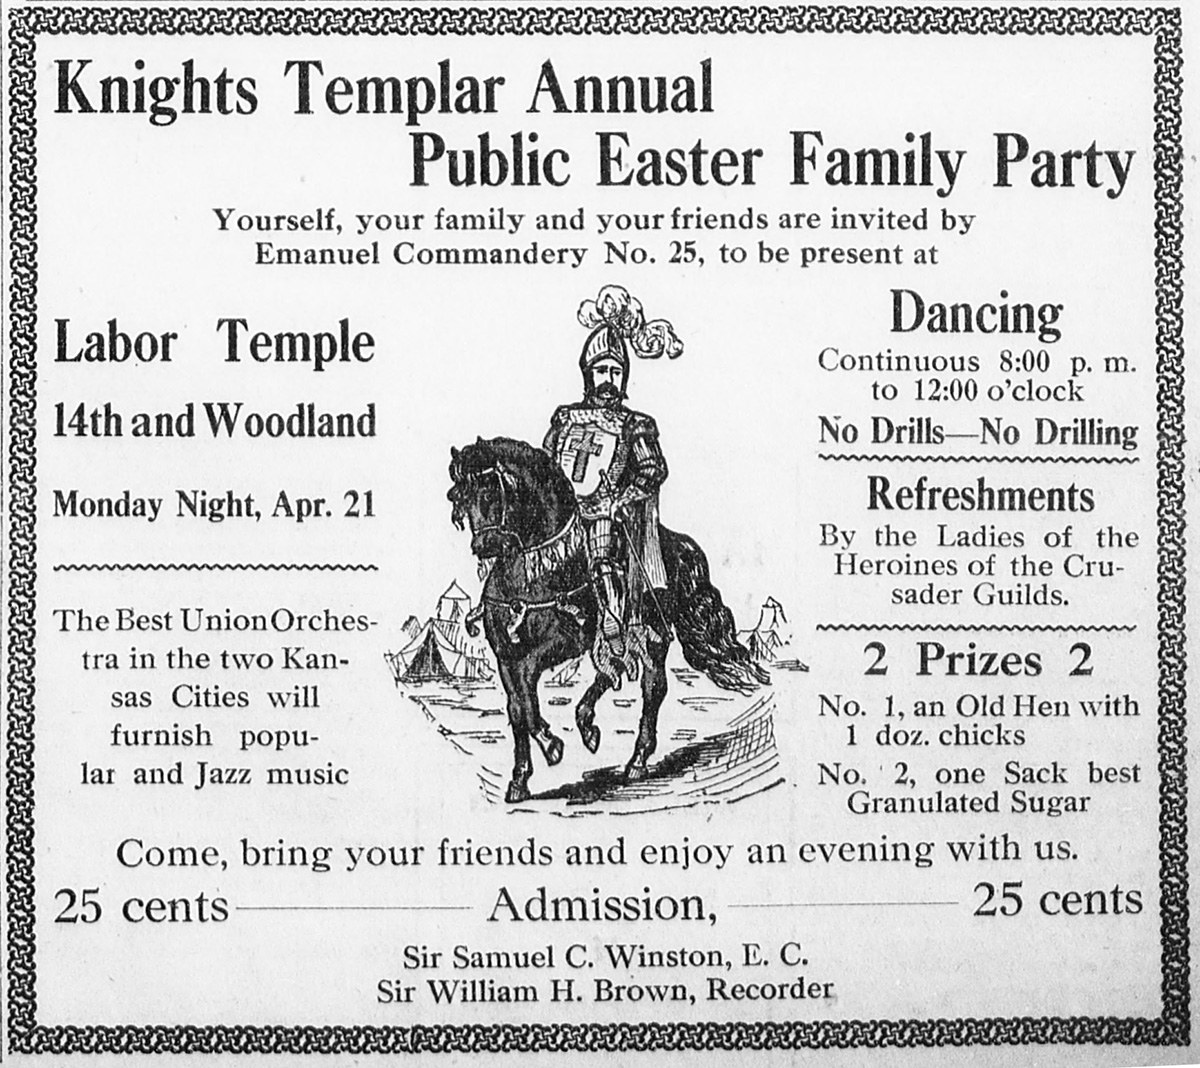 """Knights Templar Public Annual Family Easter Party,"" Kansas City Sun, April 18, 1919, 5"